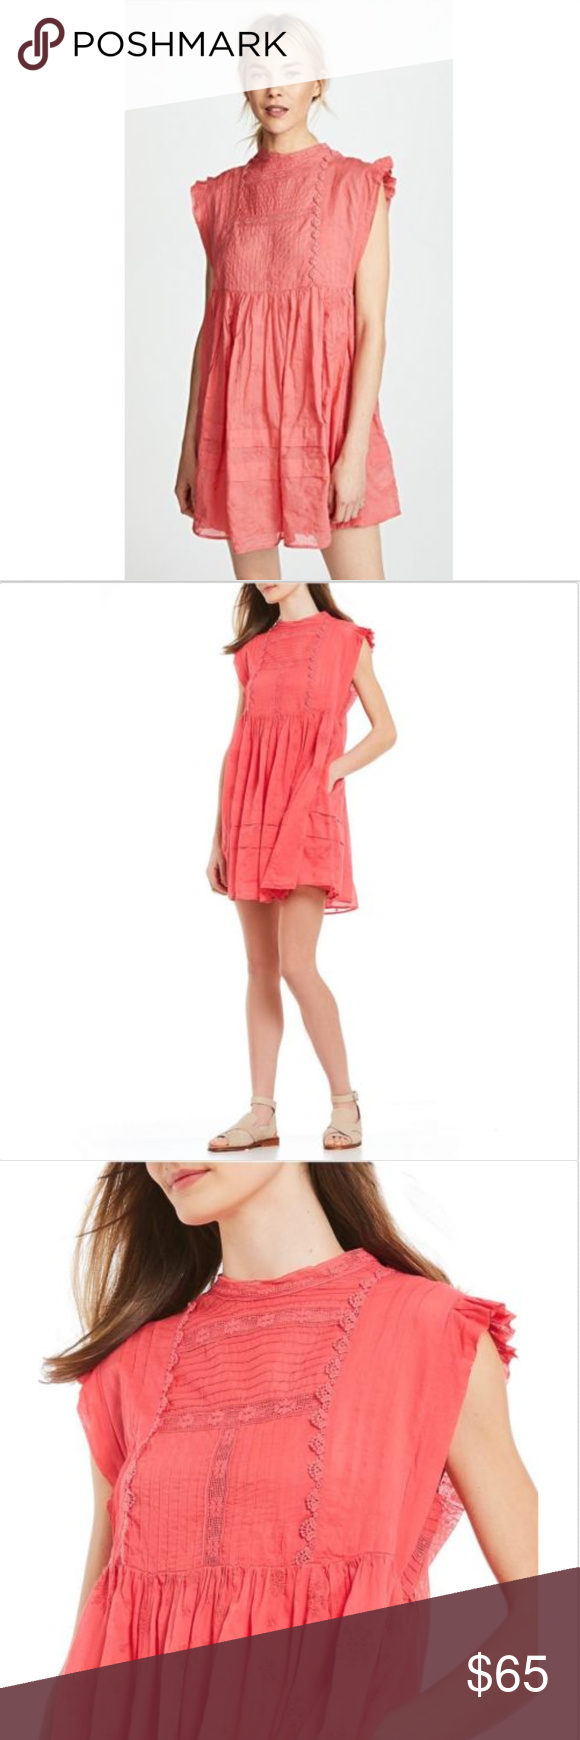 05af9e243239 FREE PEOPLE NOBODY LIKE YOU CORAL MINI DRESS XS This dress is in excellent  condition,